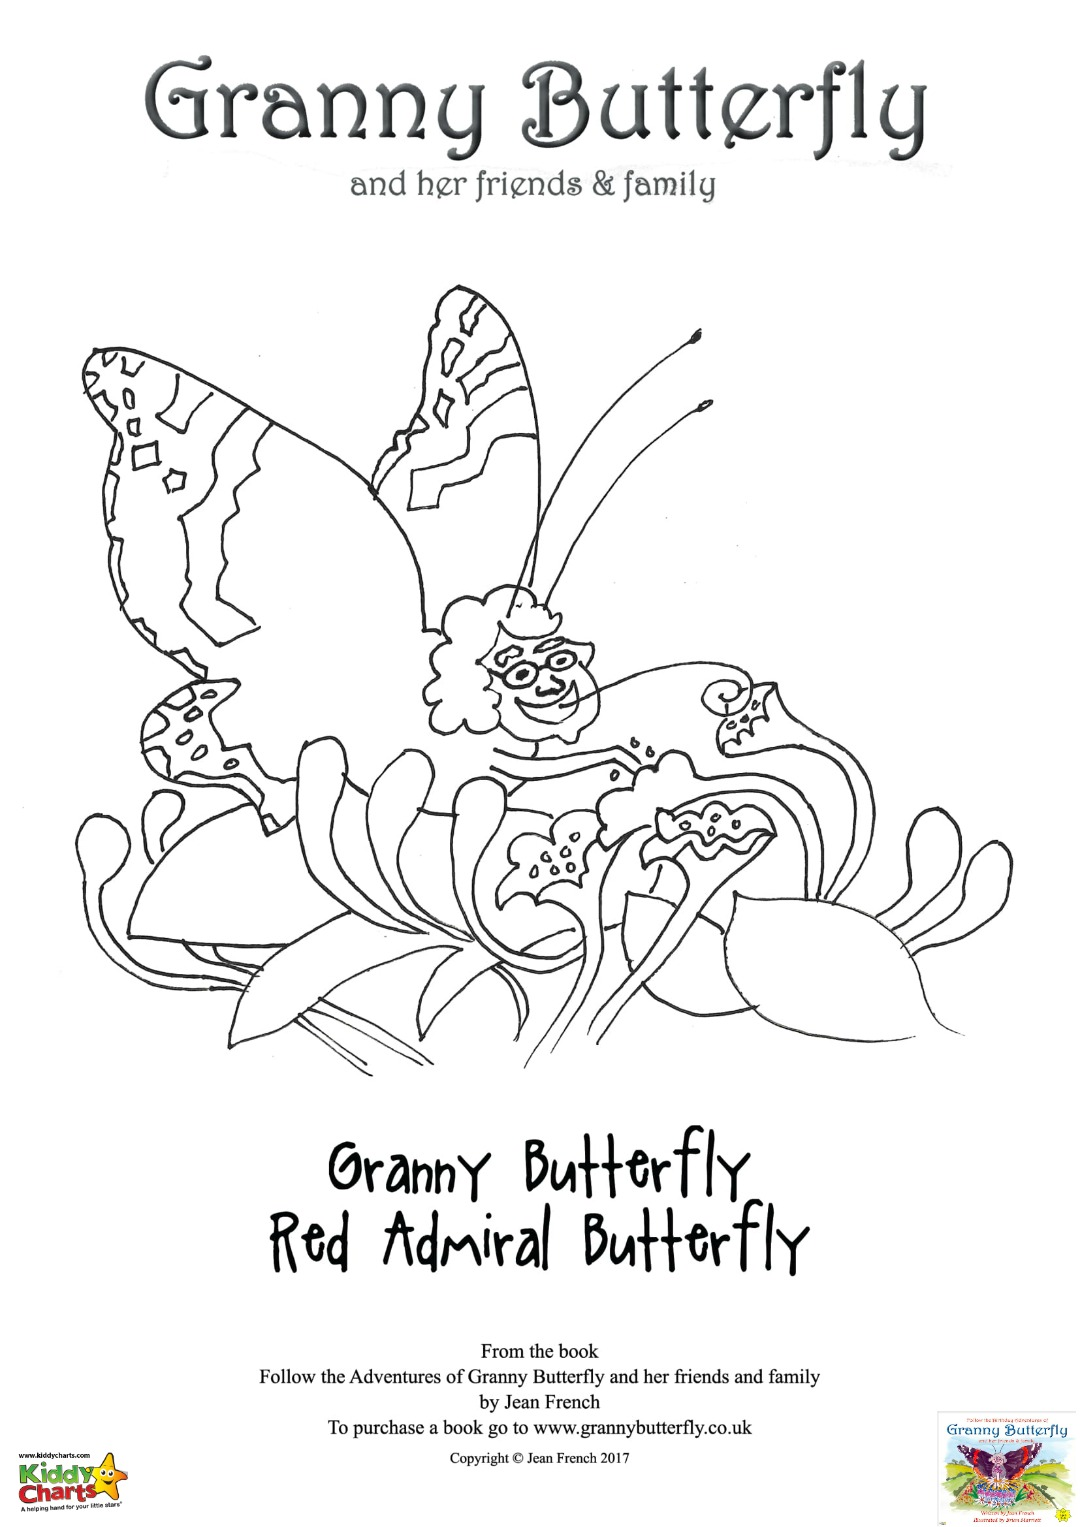 Granny Butterfly Colouring pages: Granny Butterfly herself!